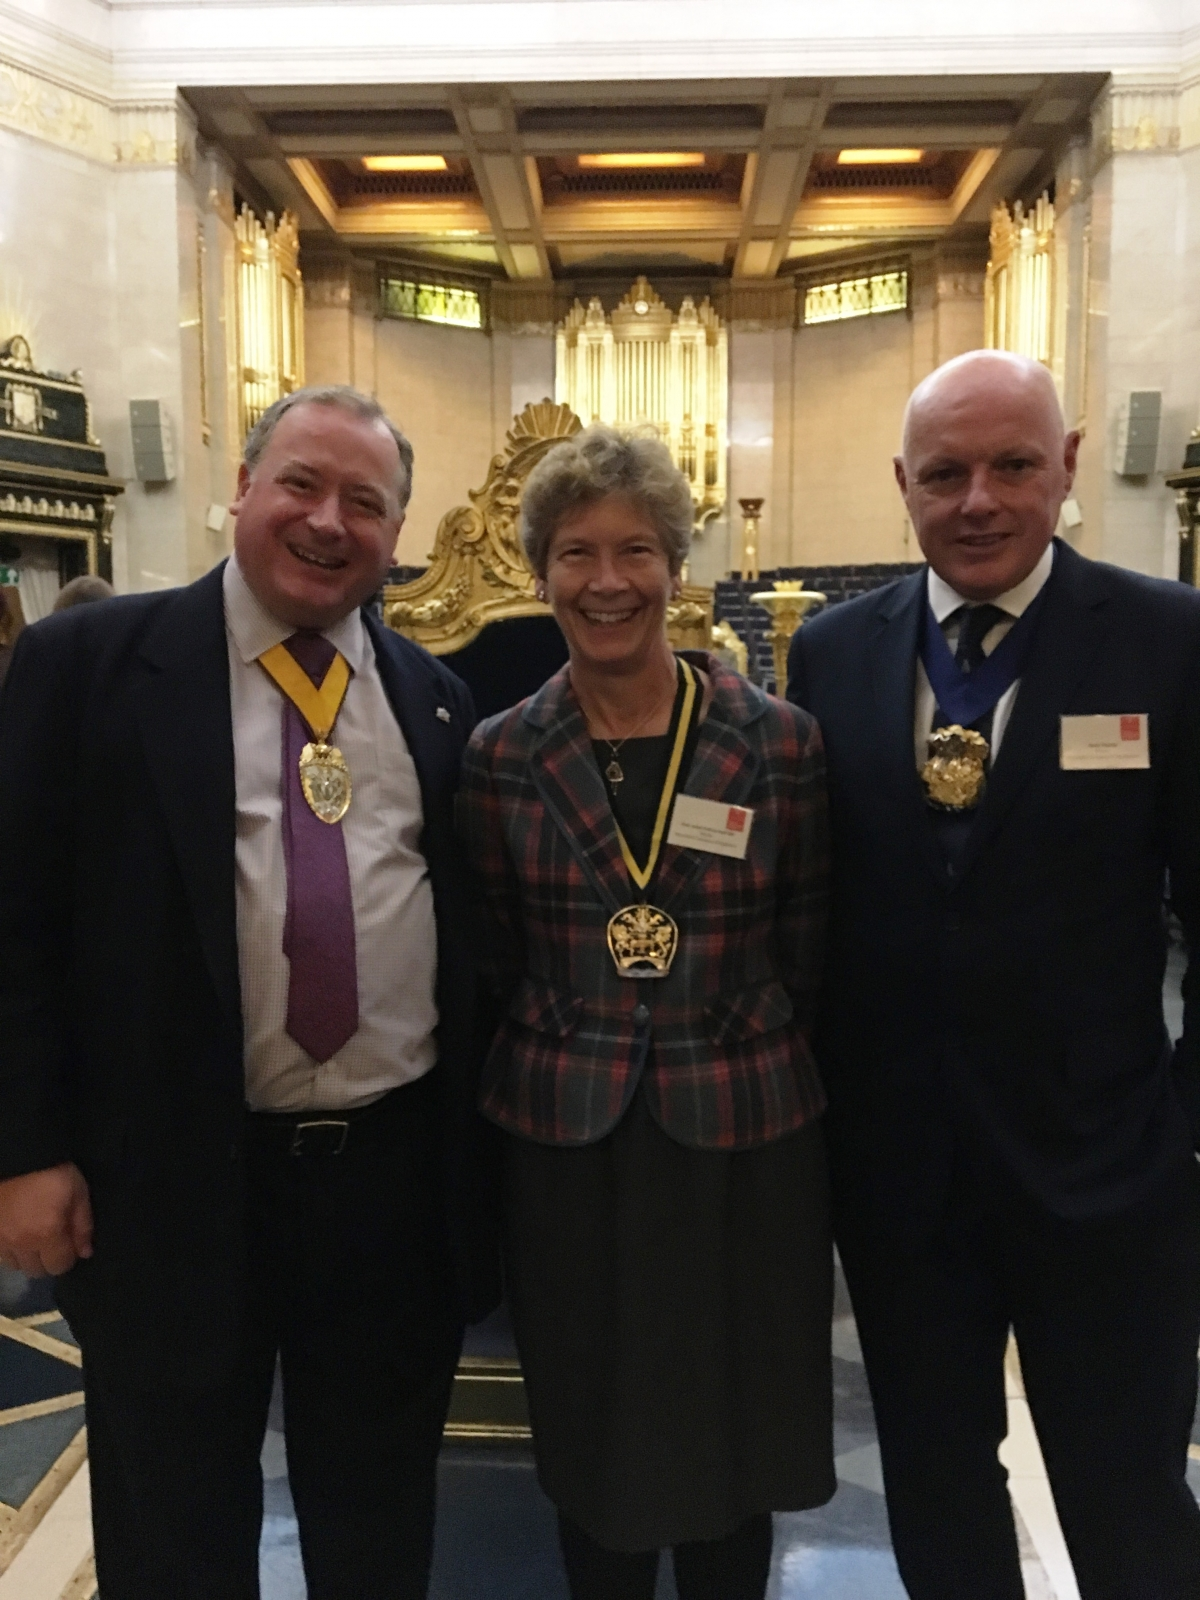 London Air Ambulance Reception: Grand Temple Lodge